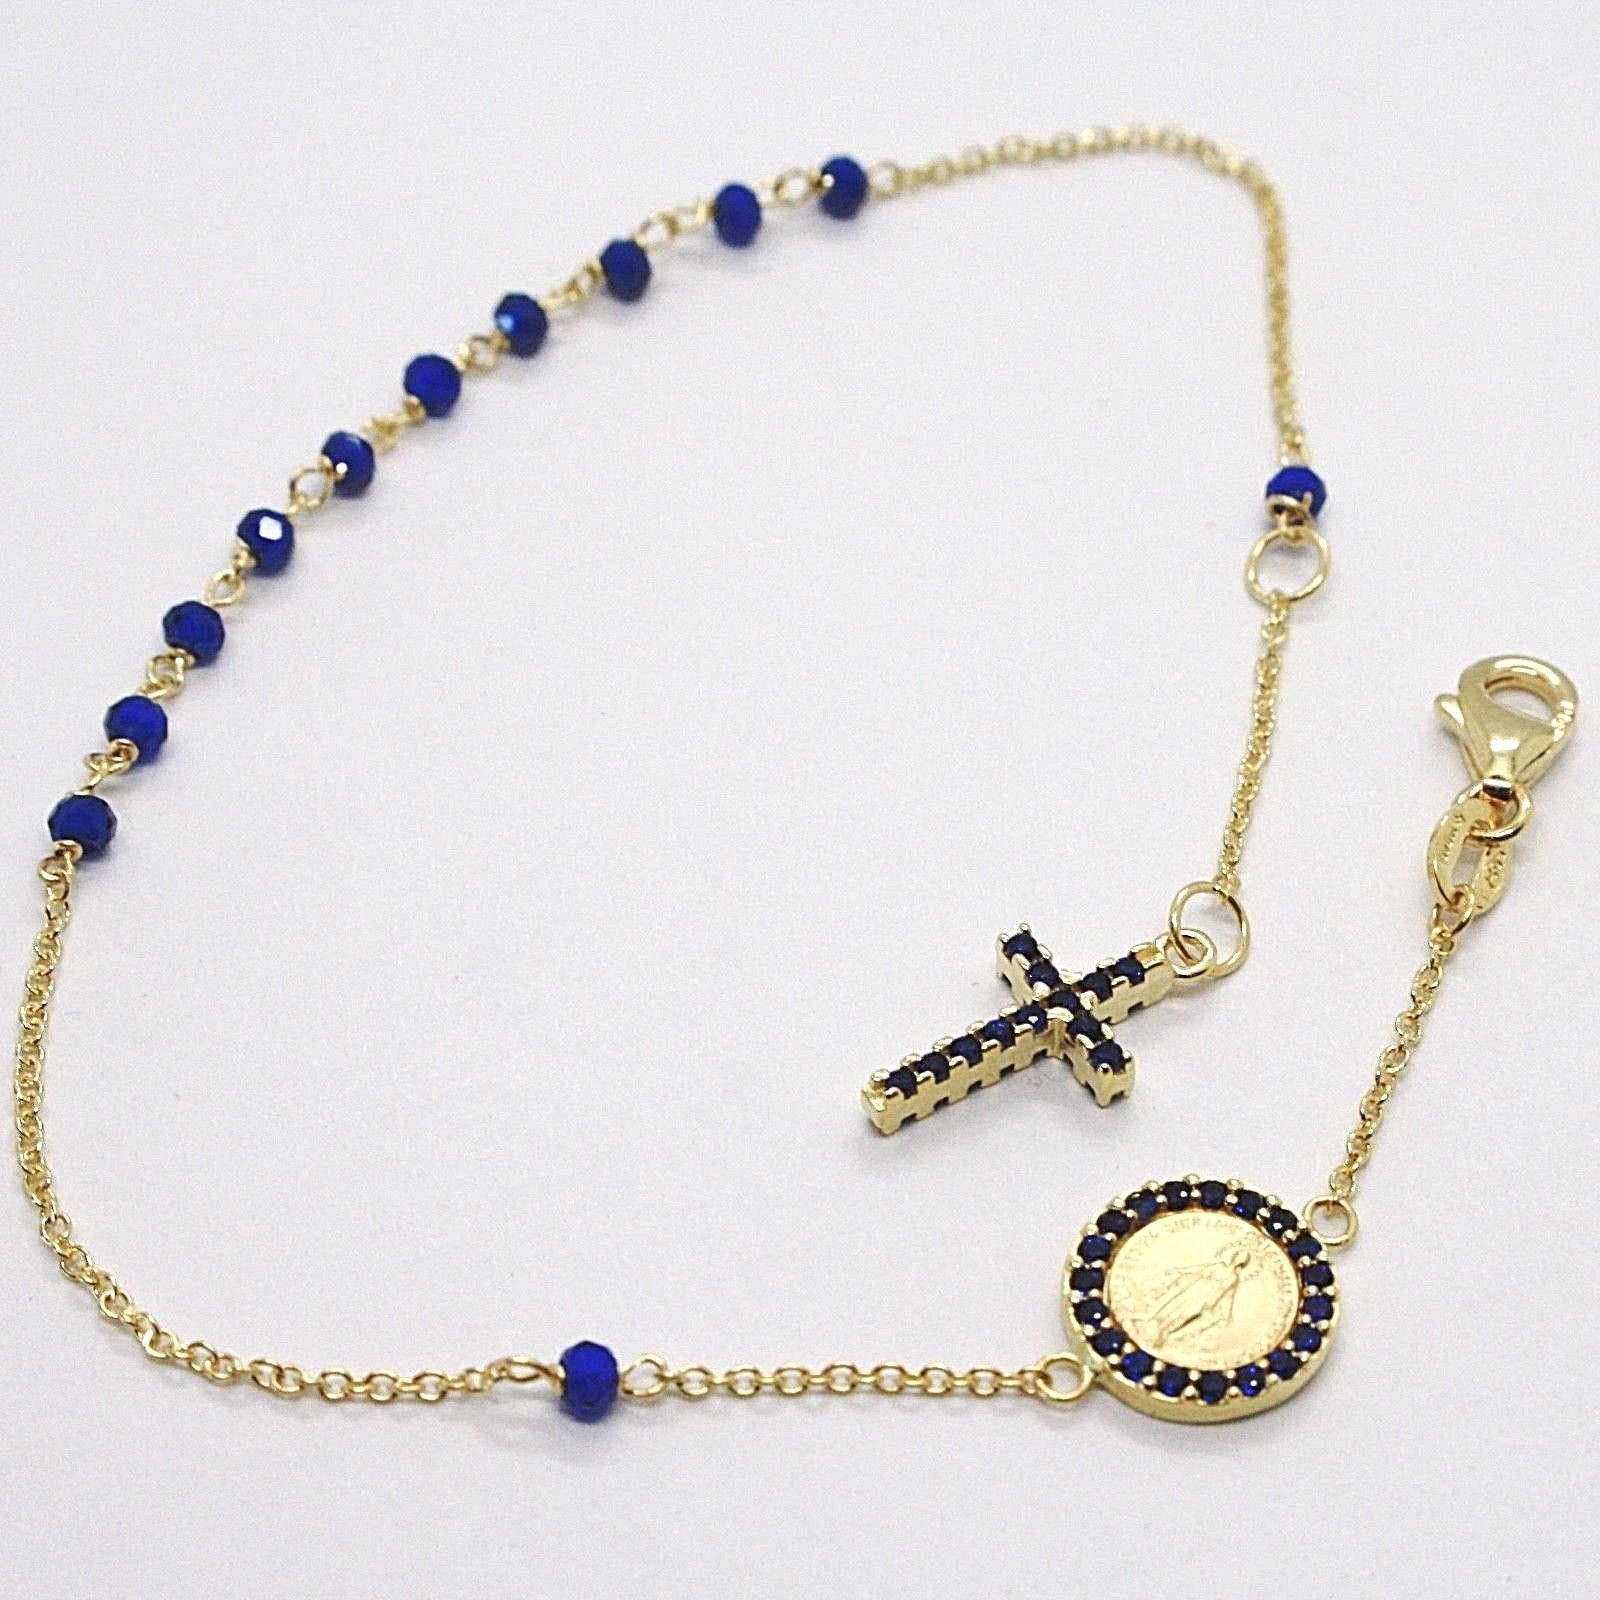 18K YELLOW GOLD ROSARY BRACELET, FACETED SAPPHIRE ROOT, CROSS, MIRACULOUS MEDAL